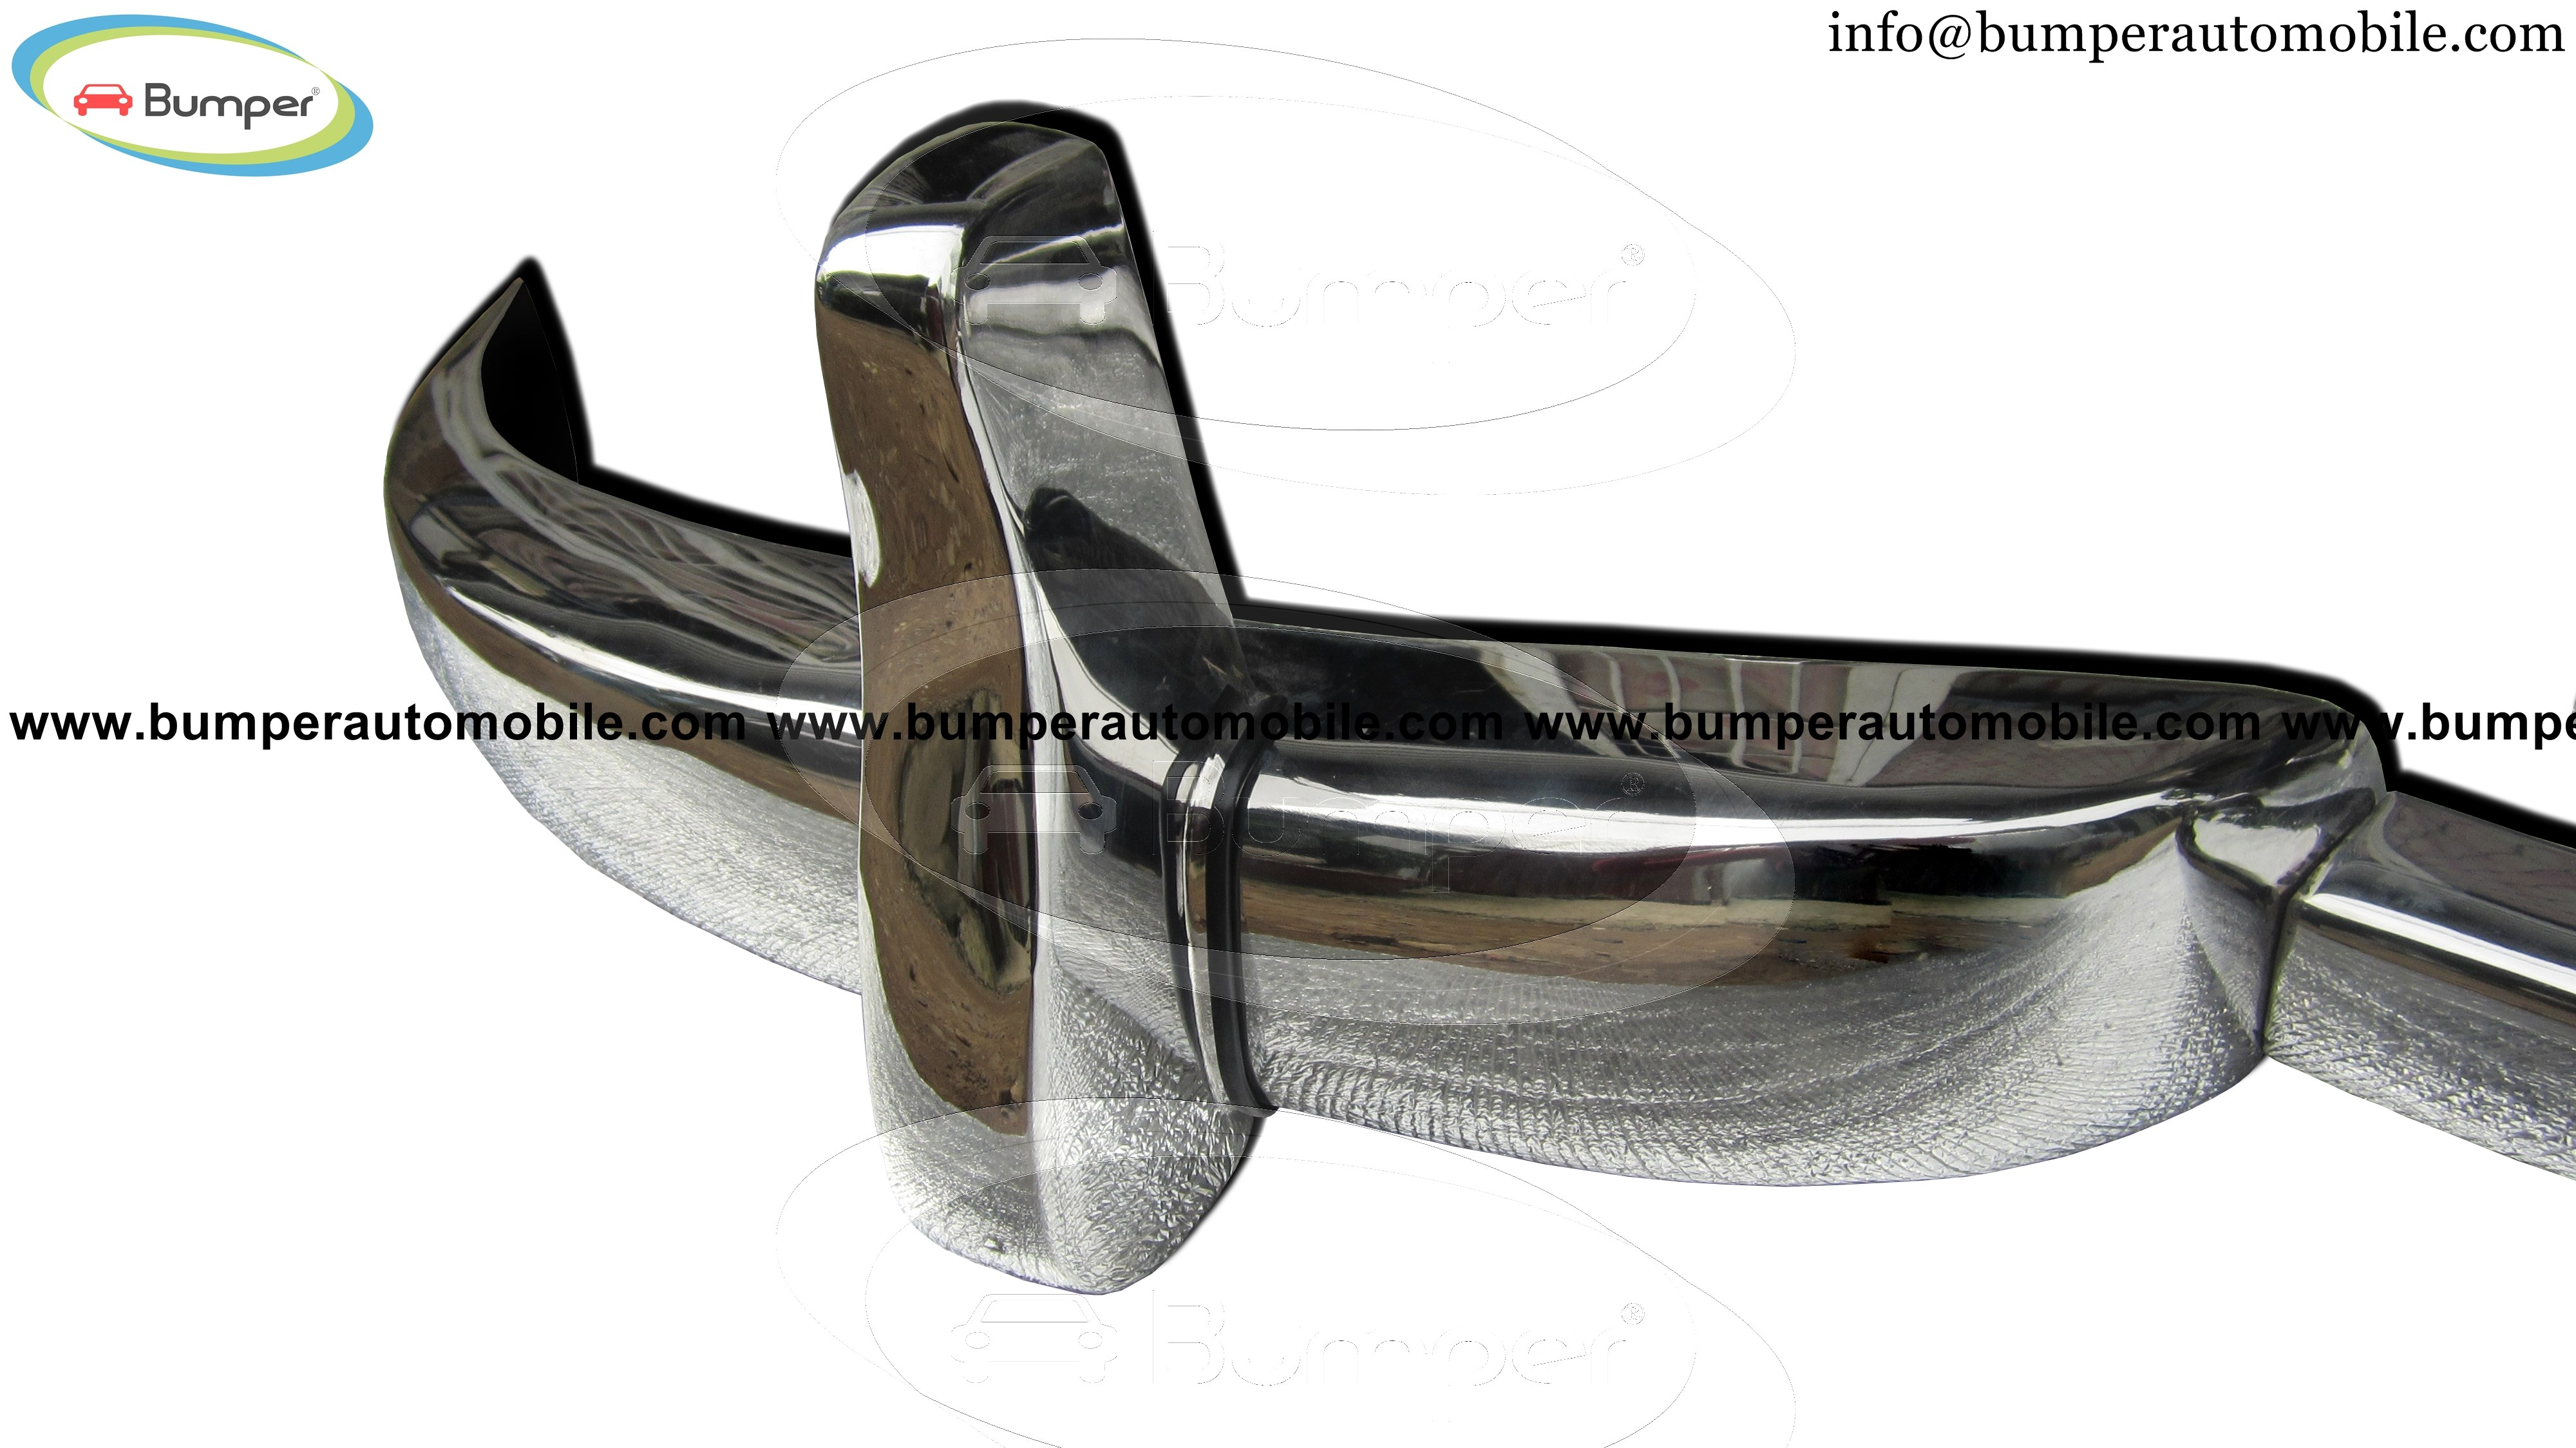 Font bumper Mercedes W186 300, 300b and 300c year (1951-1957)